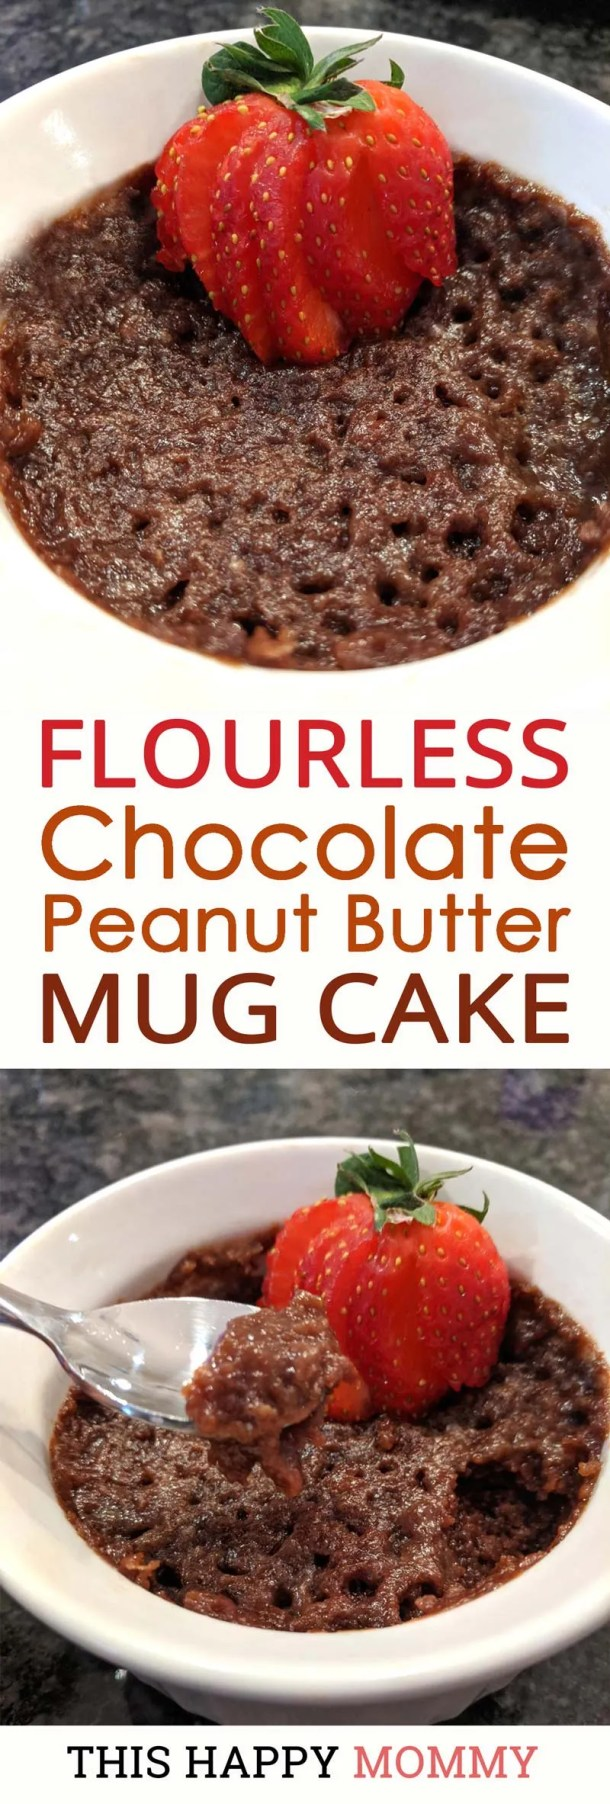 Indulge in a tasty 5 minutes dessert! Made without butter, cream, or oil, Flourless Chocolate Peanut Butter Mug Cake is a rich, decadently chocolatey single-serving cake.Yummy! | thishappymommy.com